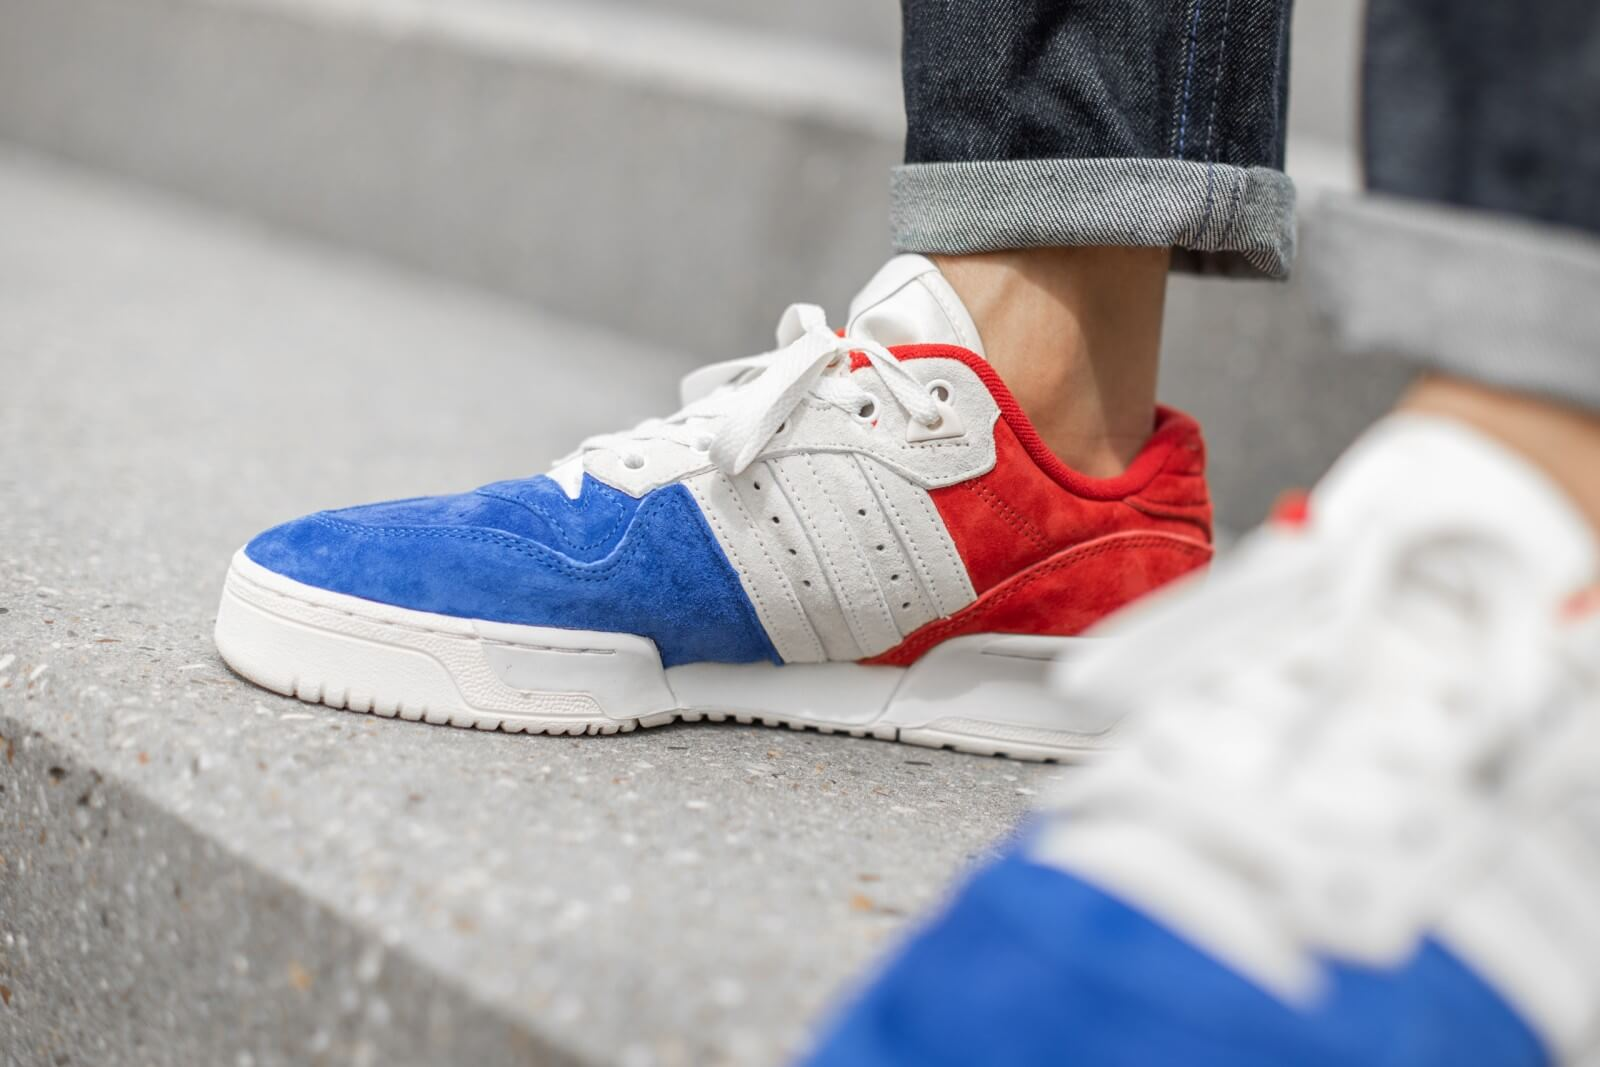 Adidas Rivalry Low Royal Blue/White